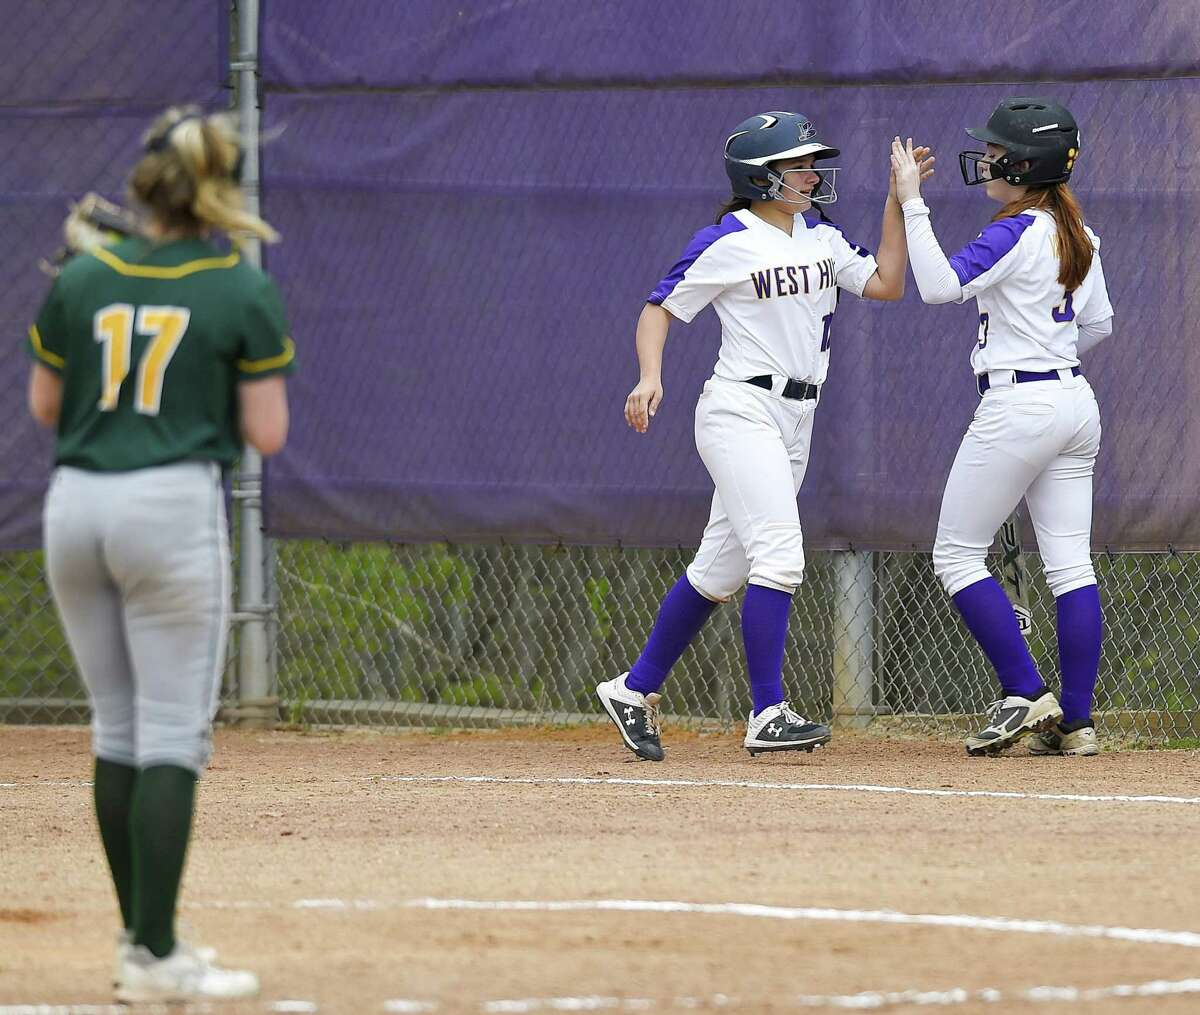 Westhill's Kirsten Hallinan high fives Kara Sciglimpaglia after scoring on an RBI double against Trinity Catholic in the third inning on Thursday.